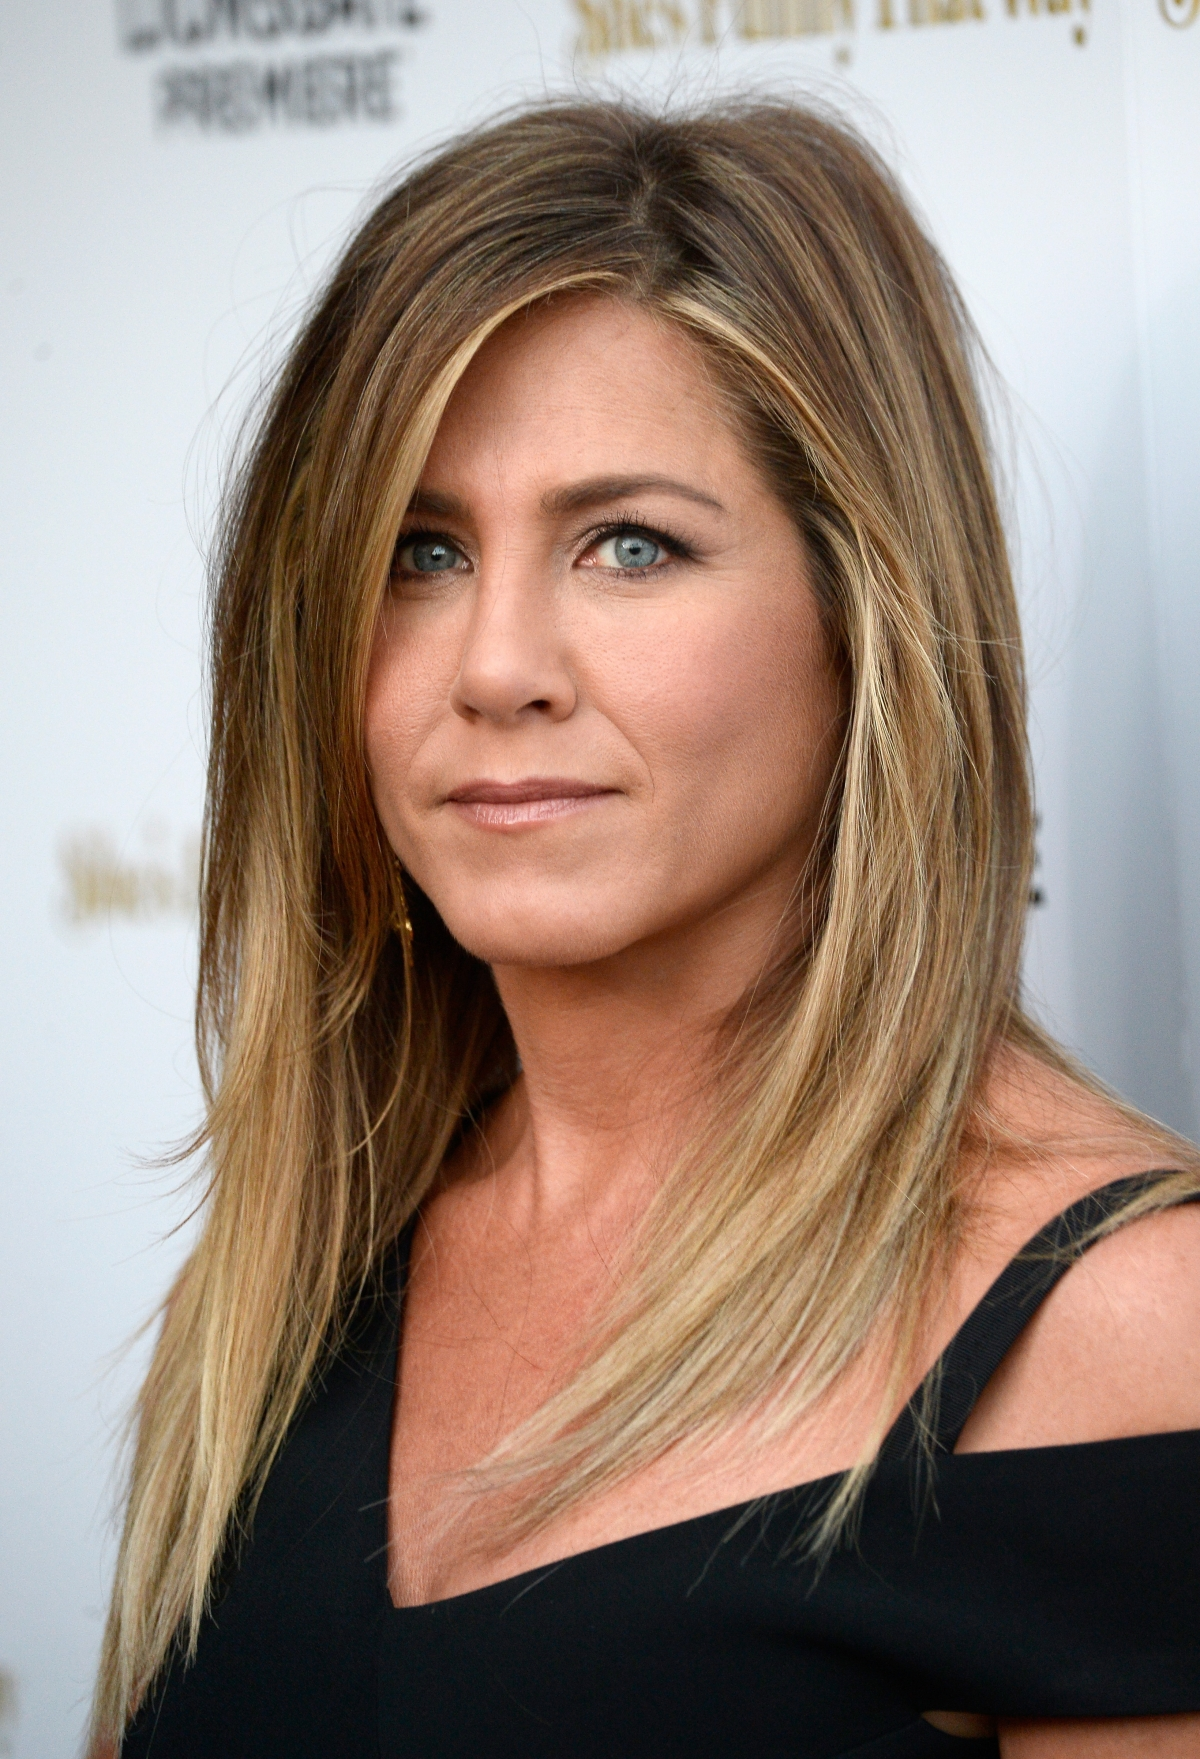 Jennifer Aniston's Snapchat debut photo is gorgeous Jennifer Aniston